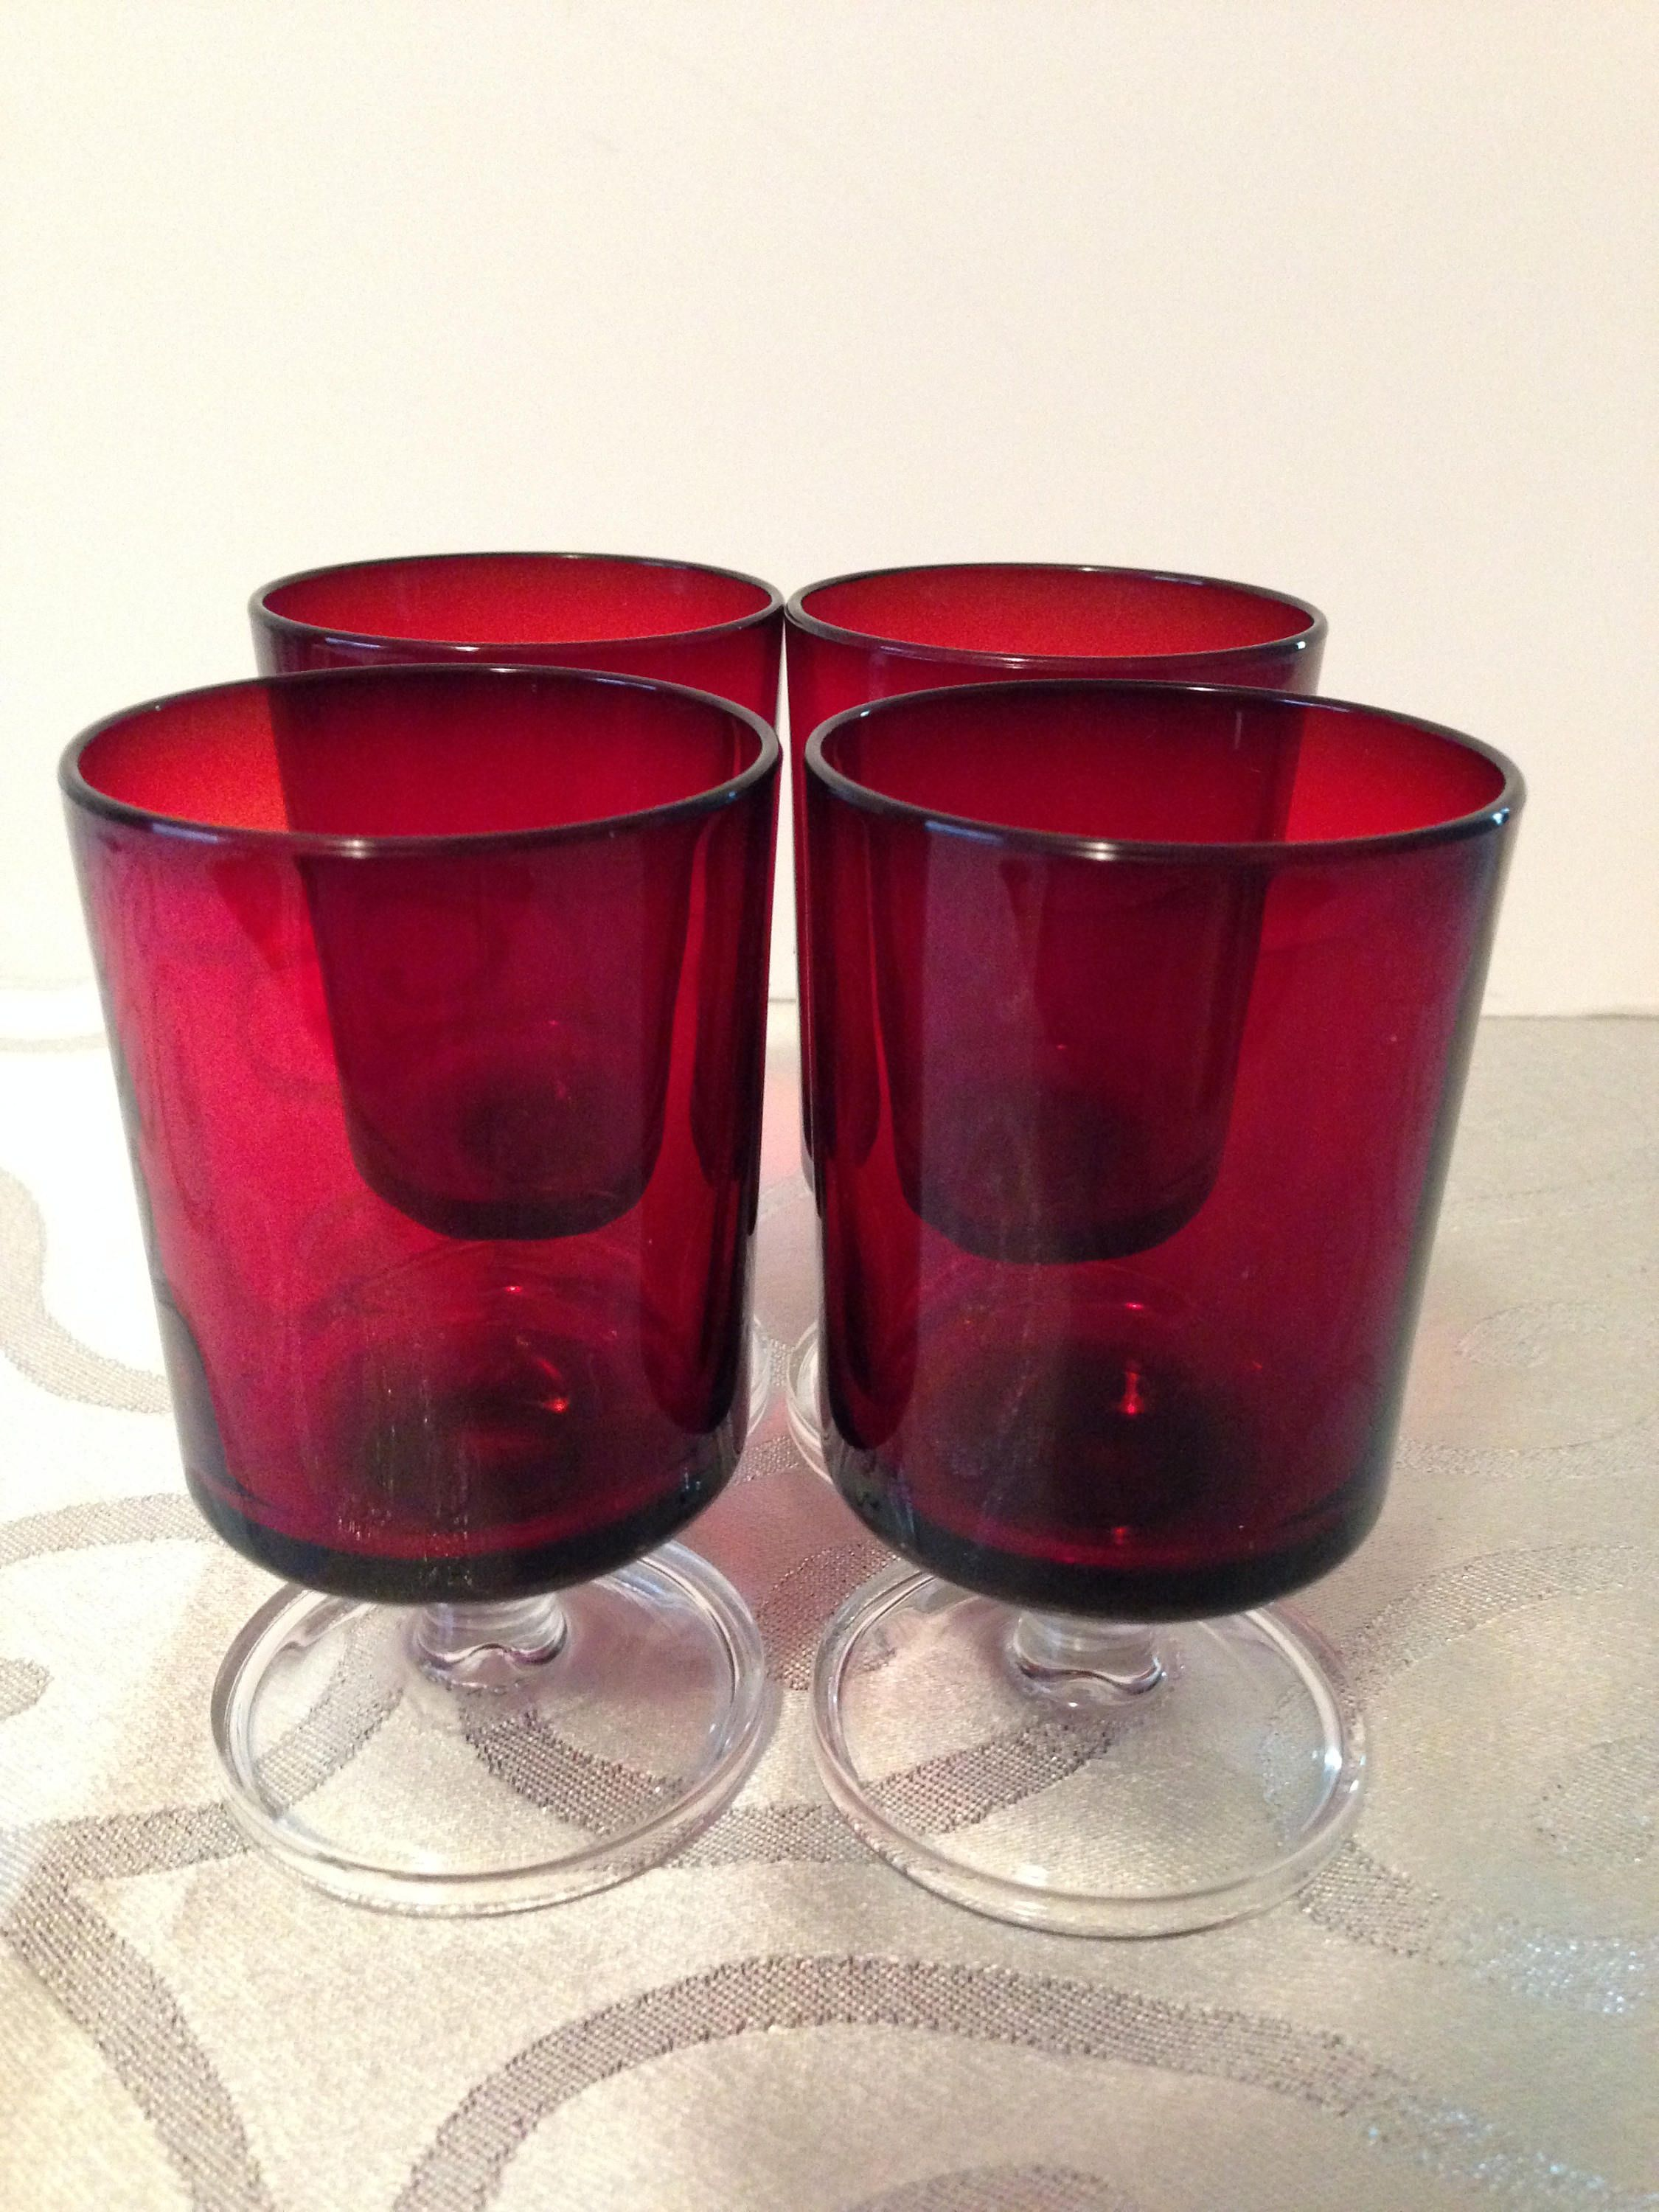 Luminarc Glass Arcoroc Luminarc Red Ruby Cavalier Cordial Wine Glasses Set Of 4